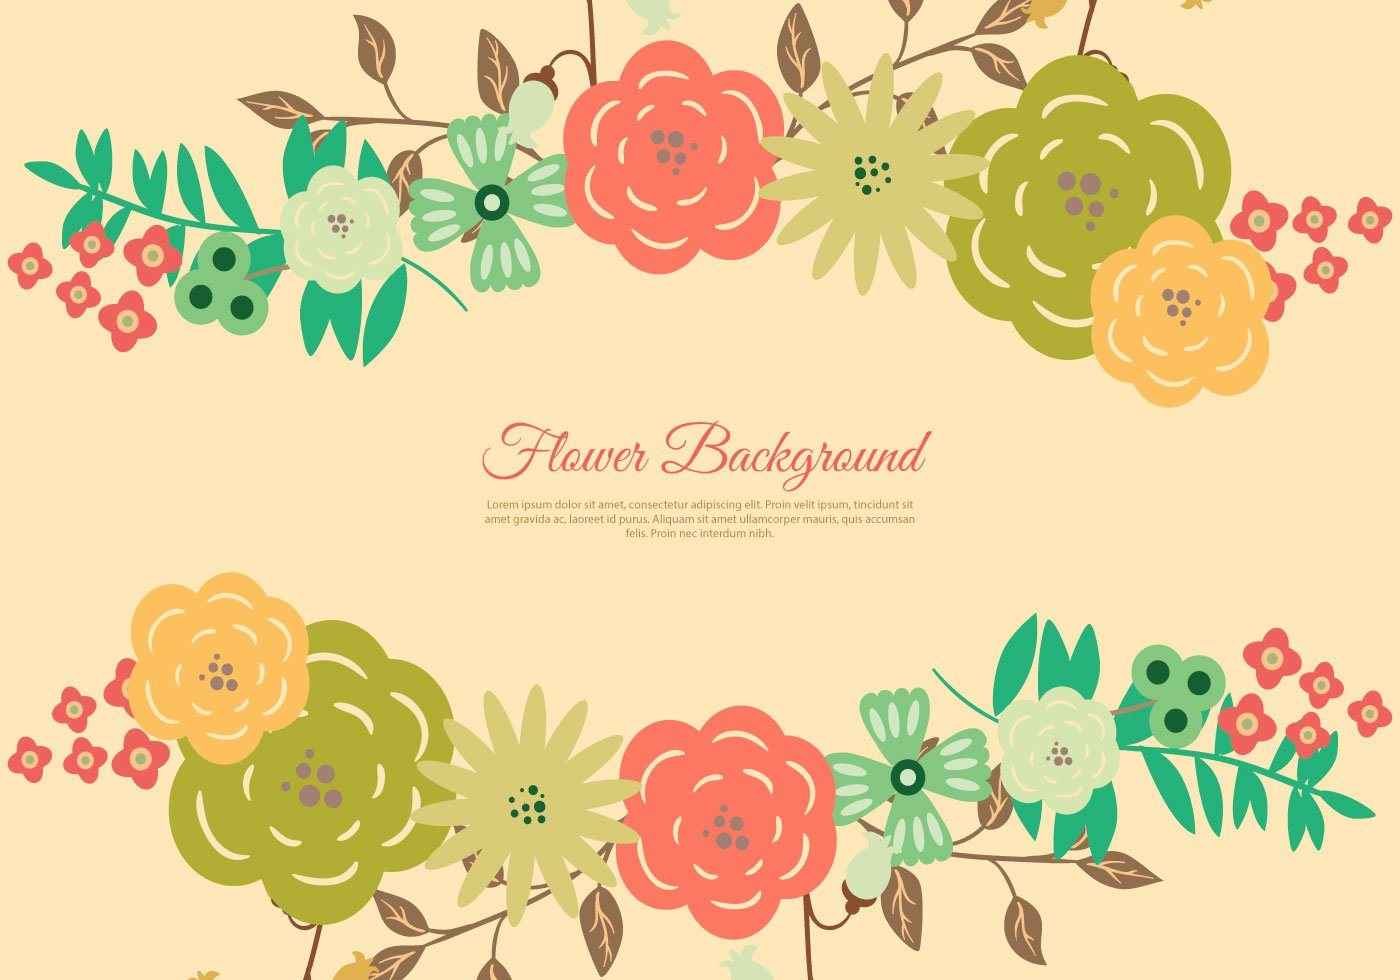 Beautiful Floral Wreath Background Free Graphic Design Elements